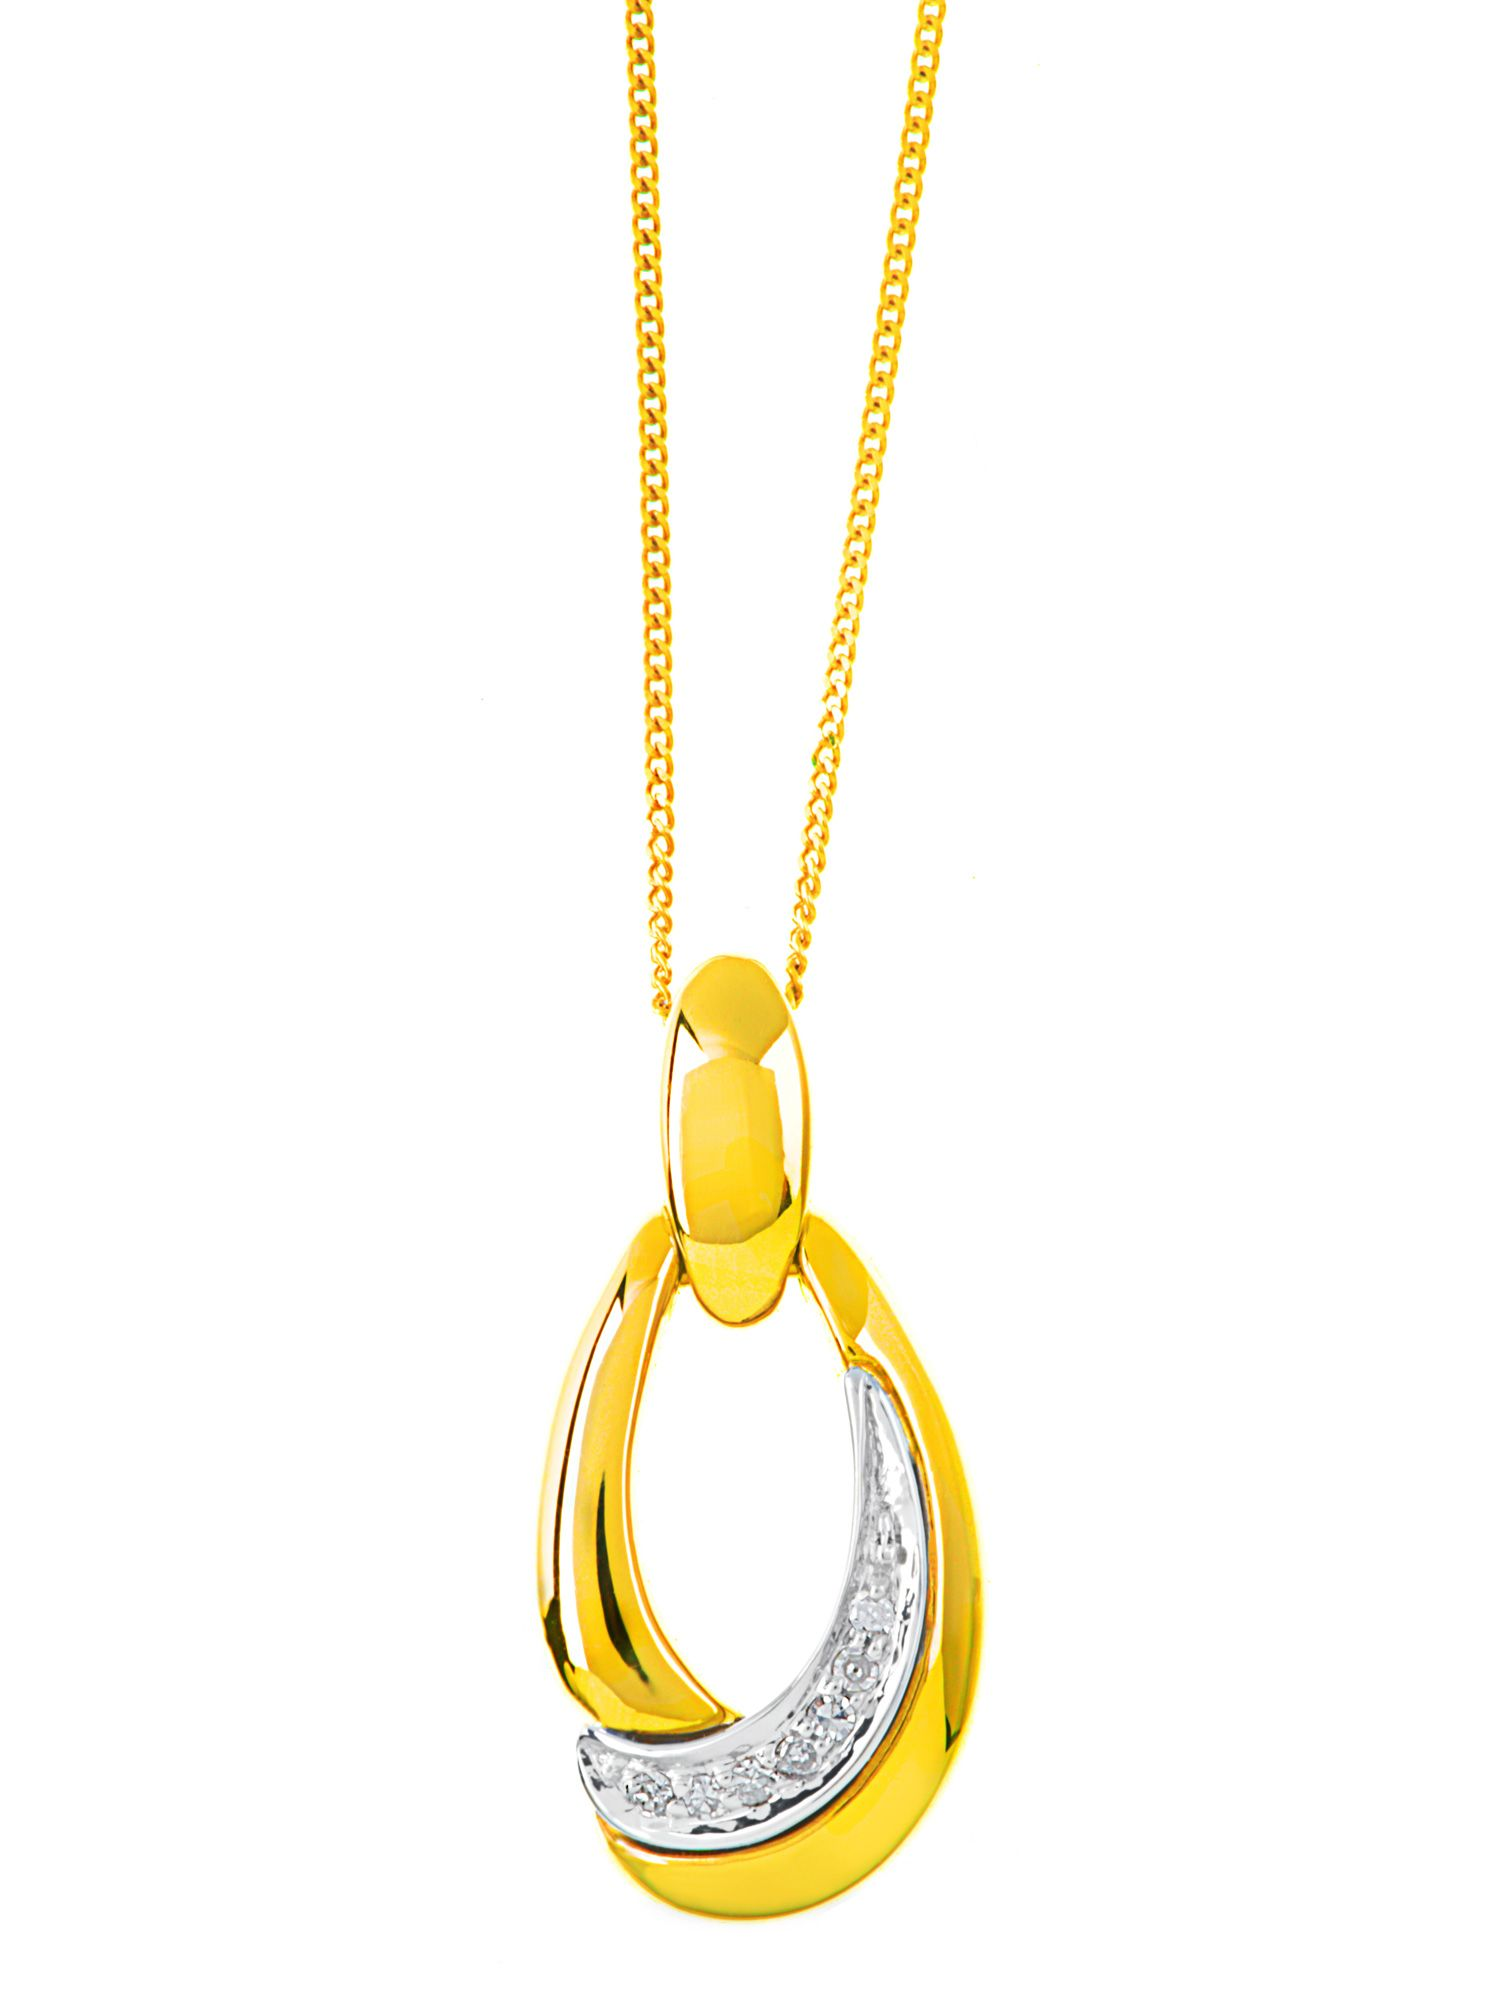 9ct 2 colour gold diamond set oval pendant